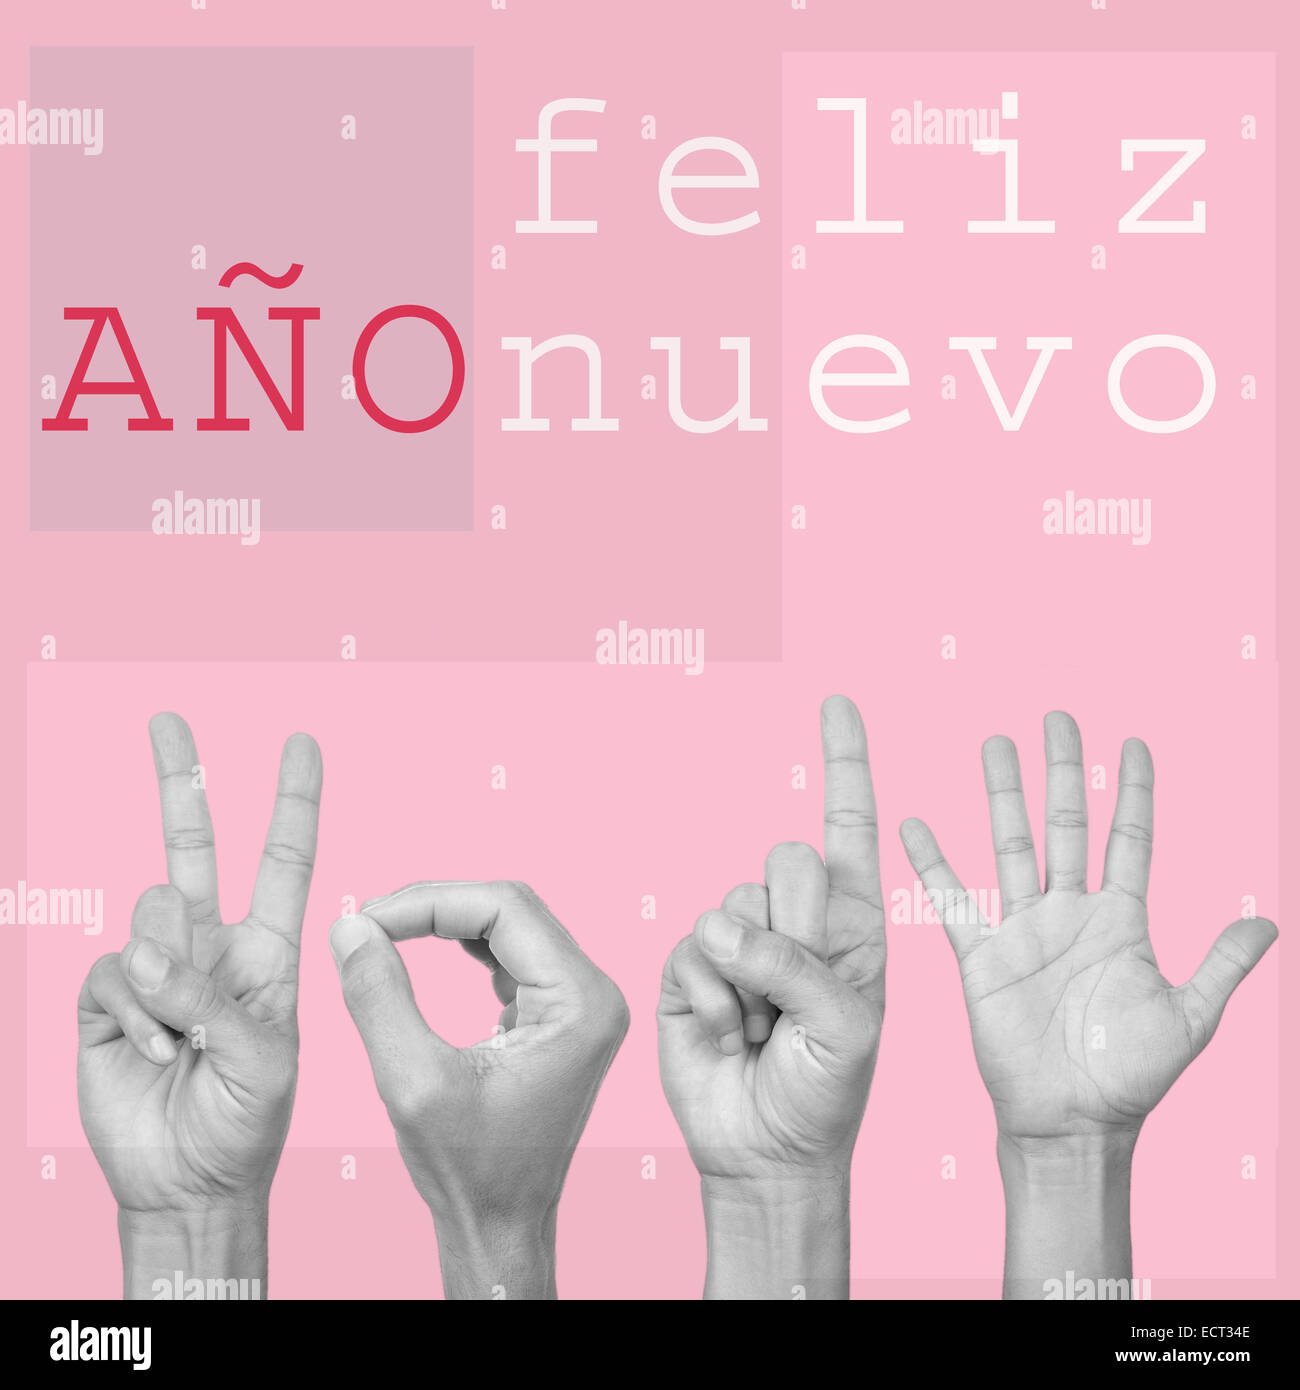 the text feliz ano nuevo, happy new year in spanish, and man hands forming the number 2015, on a pink background, - Stock Image